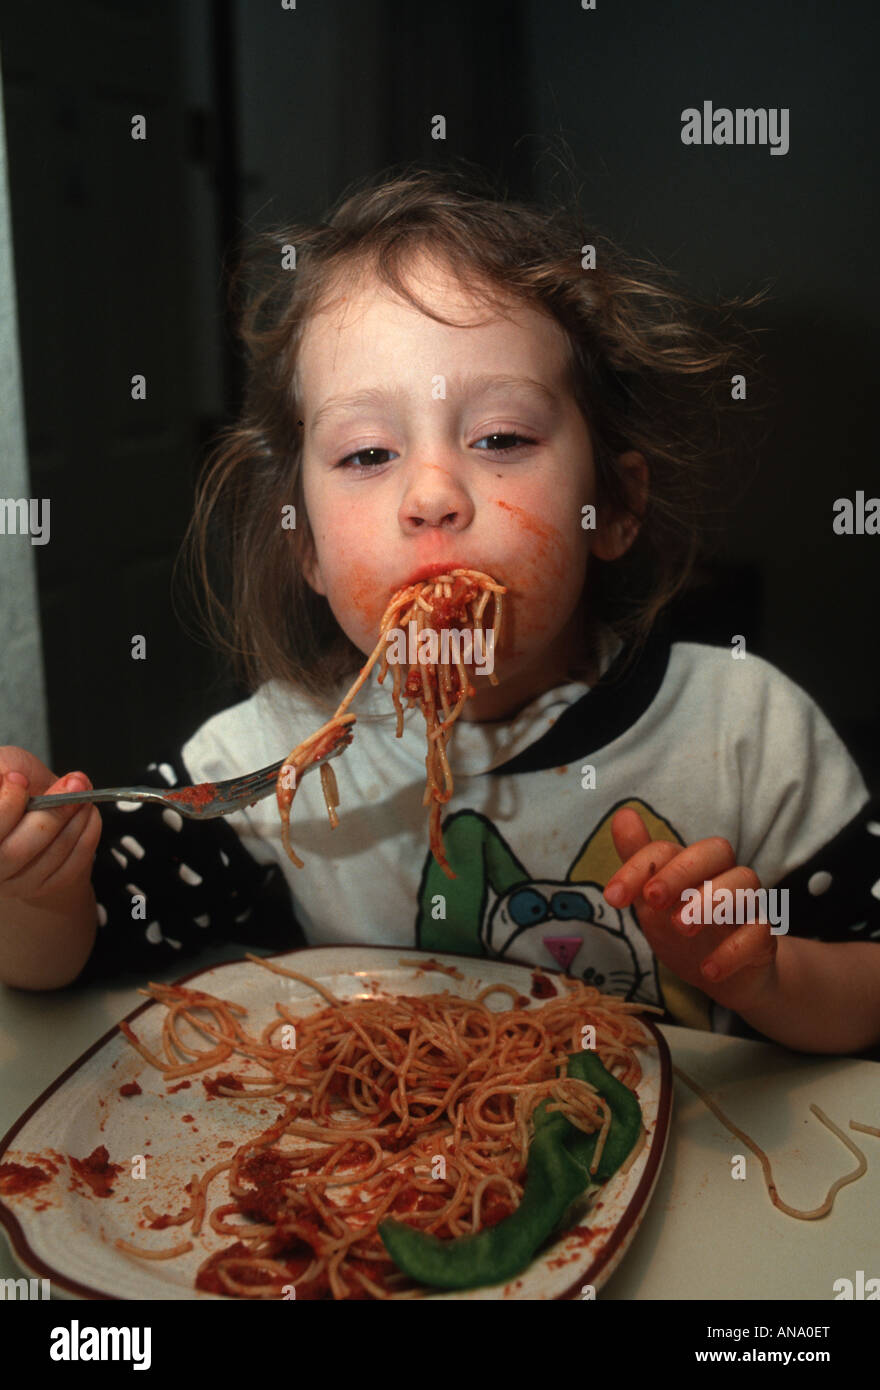 Little girl really digging into her spaghetti - Stock Image